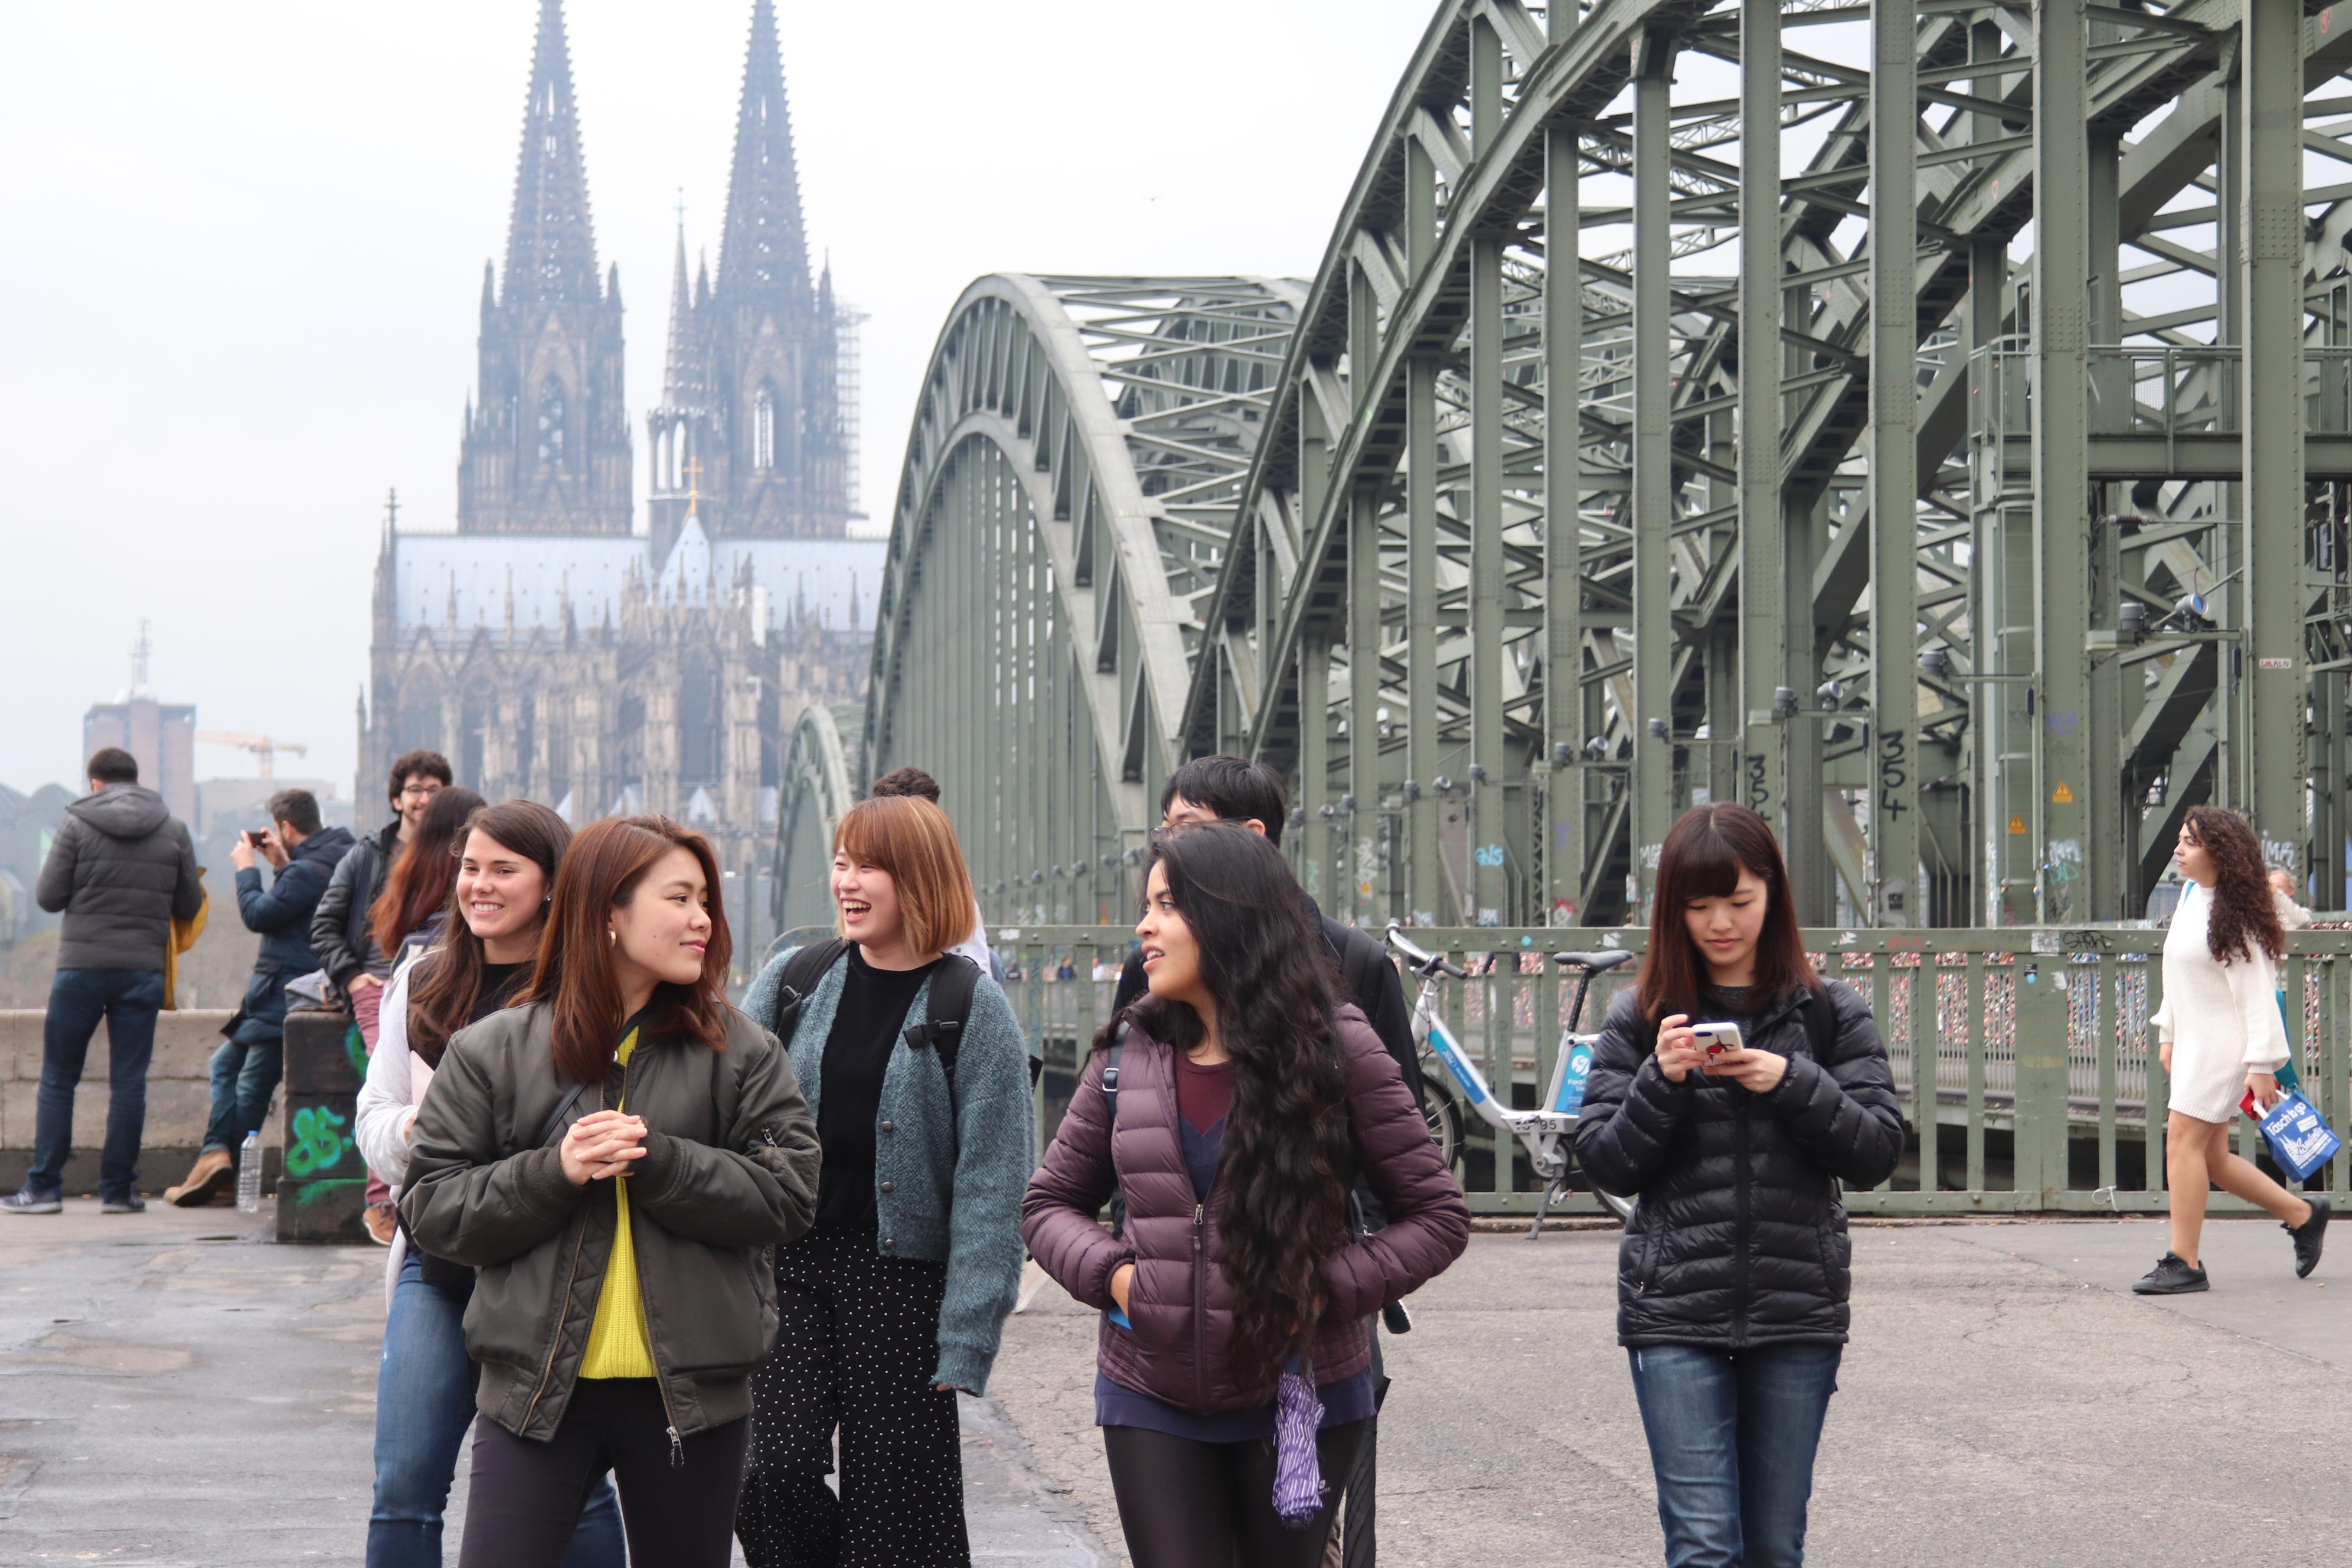 Few students in front of the Hohenzollern bridge with the cologne cathedral in the background.